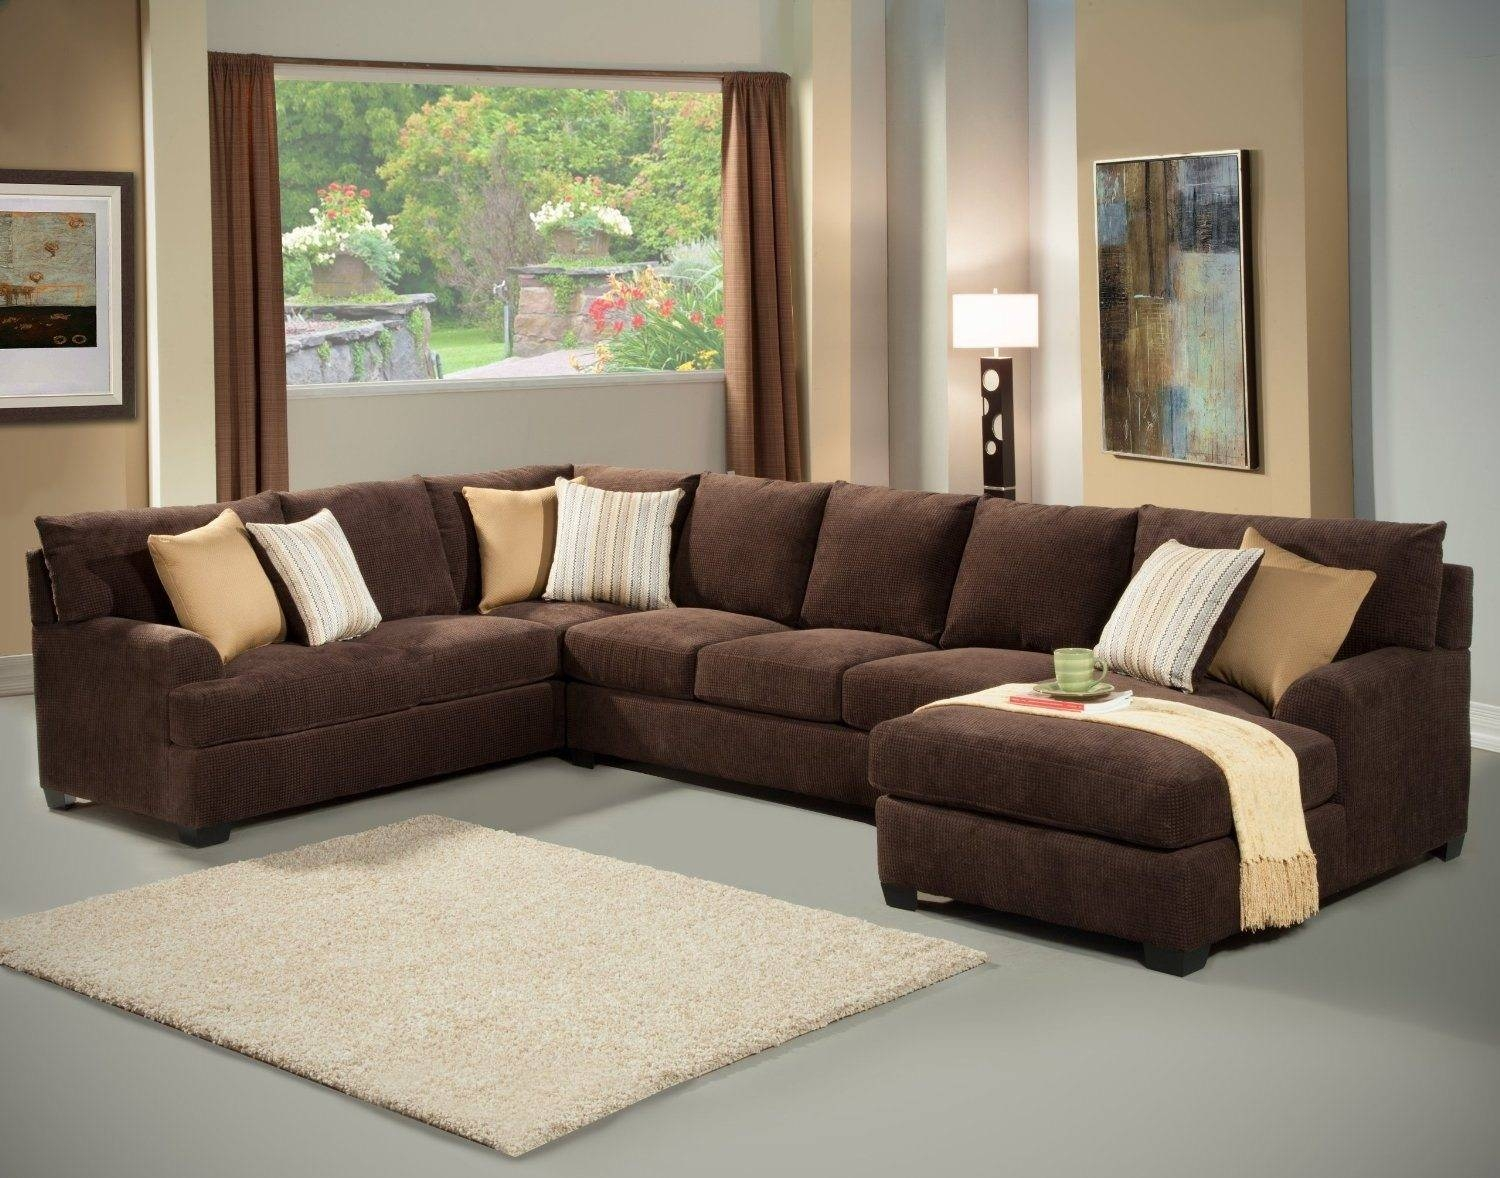 Queen Sofa Bed Sectional in Queen Sofa Sleeper Sectional Microfiber (Image 11 of 25)